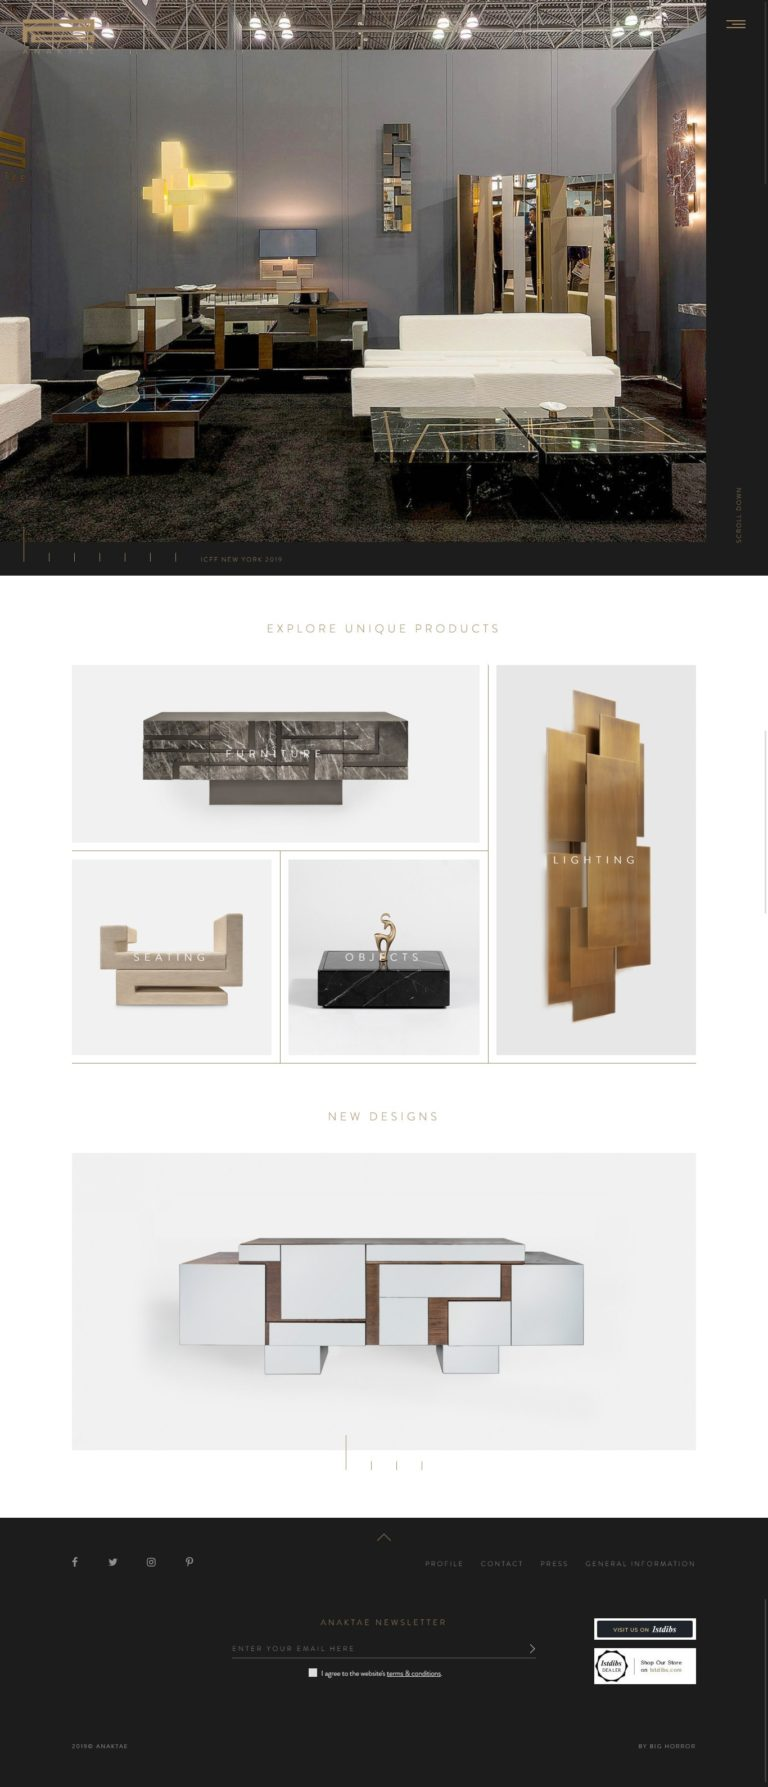 Anaktae — Architecture, Interior Decoration and Product Design